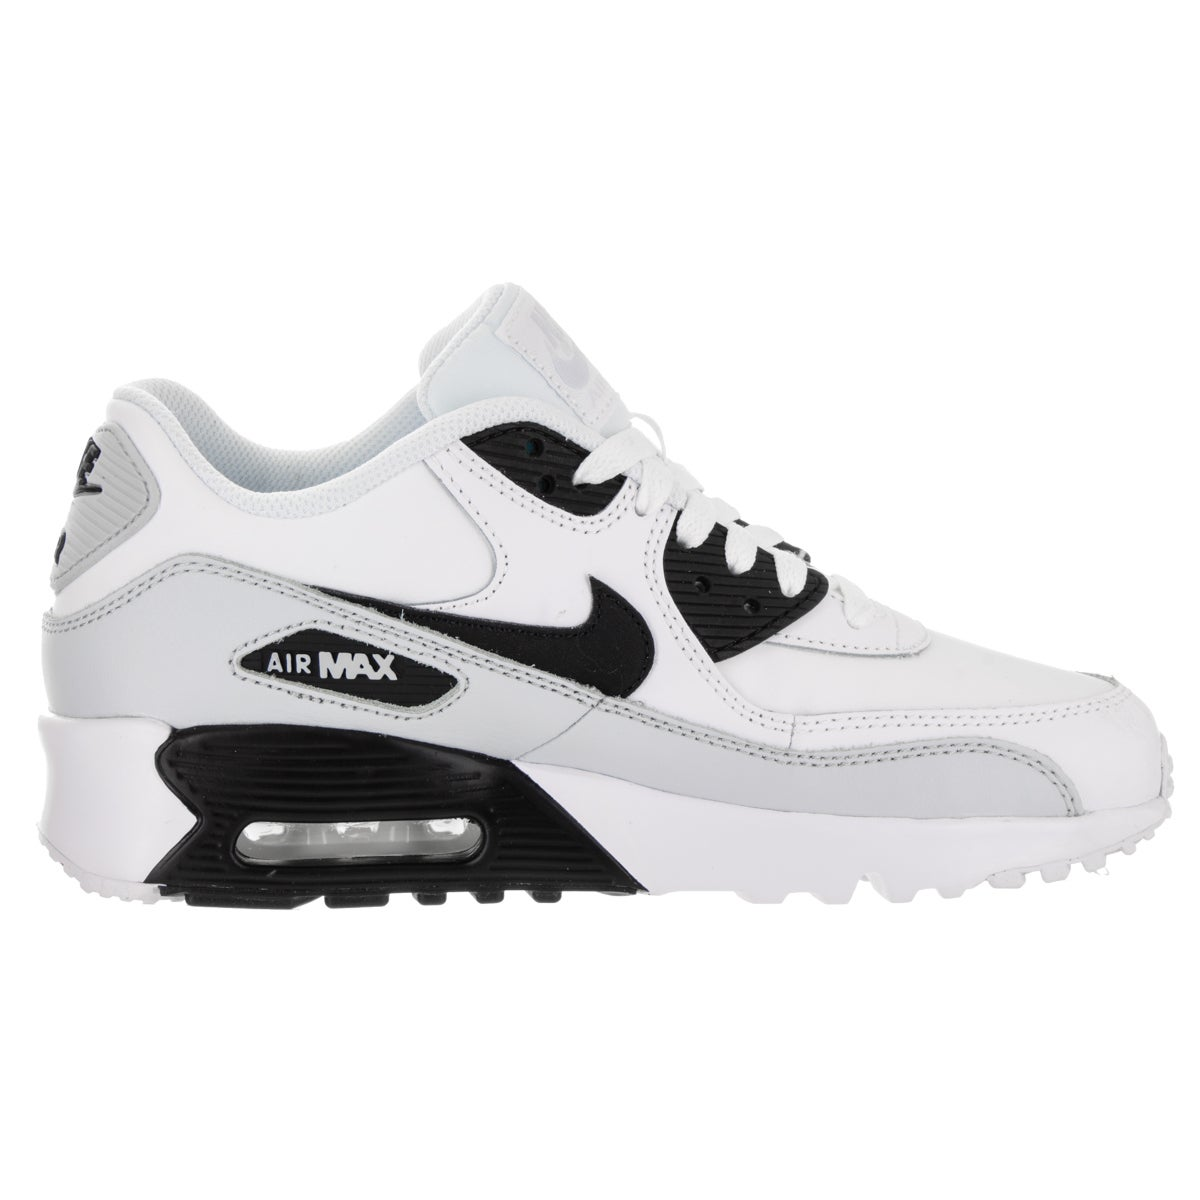 8f18e7d514 Shop Nike Kids' Air Max 90 LTR (GS) White Leather Running Shoe - Free  Shipping Today - Overstock - 13679964